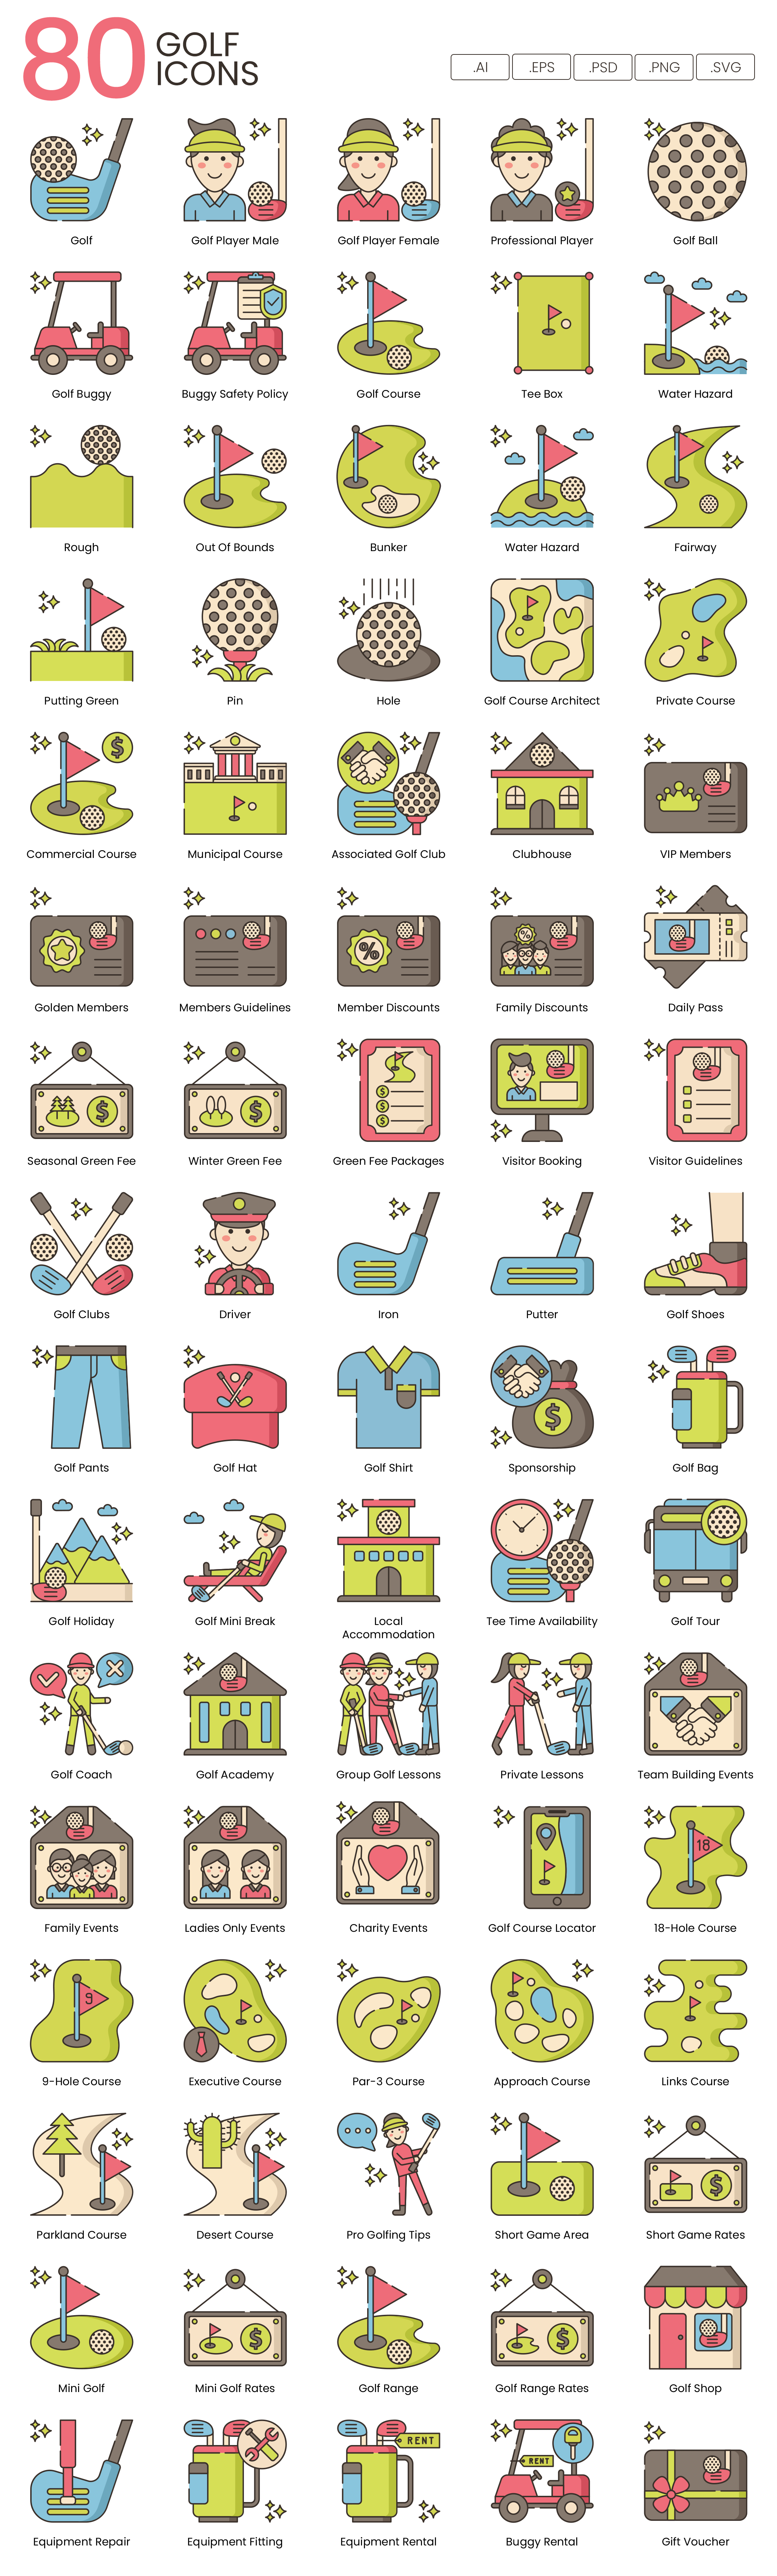 Golf Vector Icons Preview Image